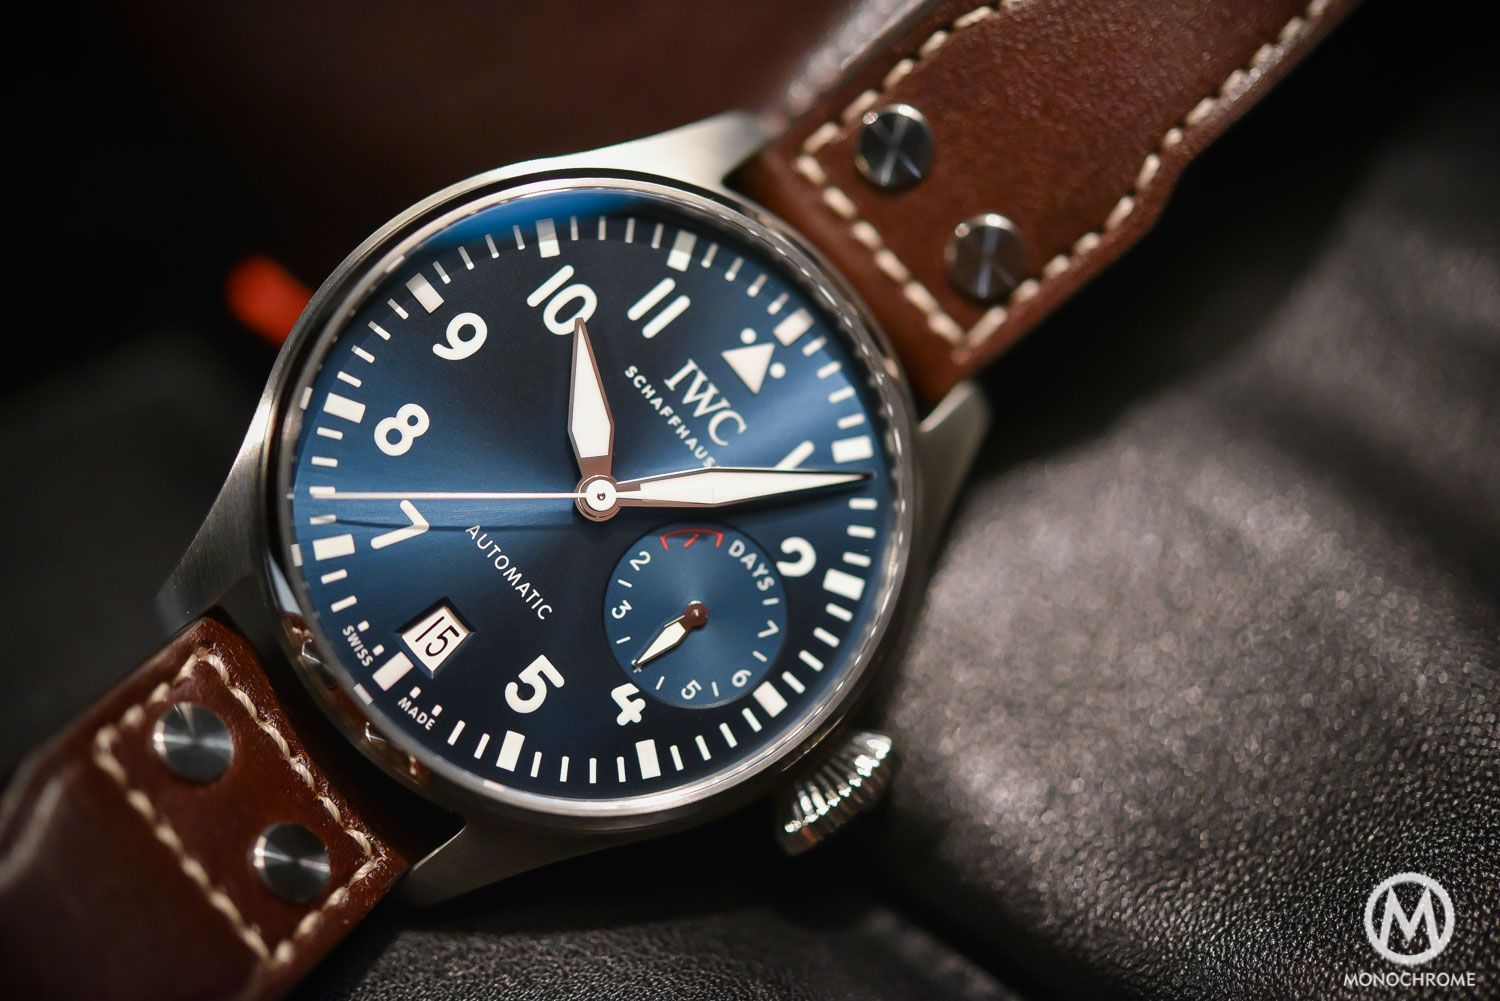 01029c0ab4c SIHH 2016 - Hands-on with the new IWC Big Pilot s Watch Edition  Le ...